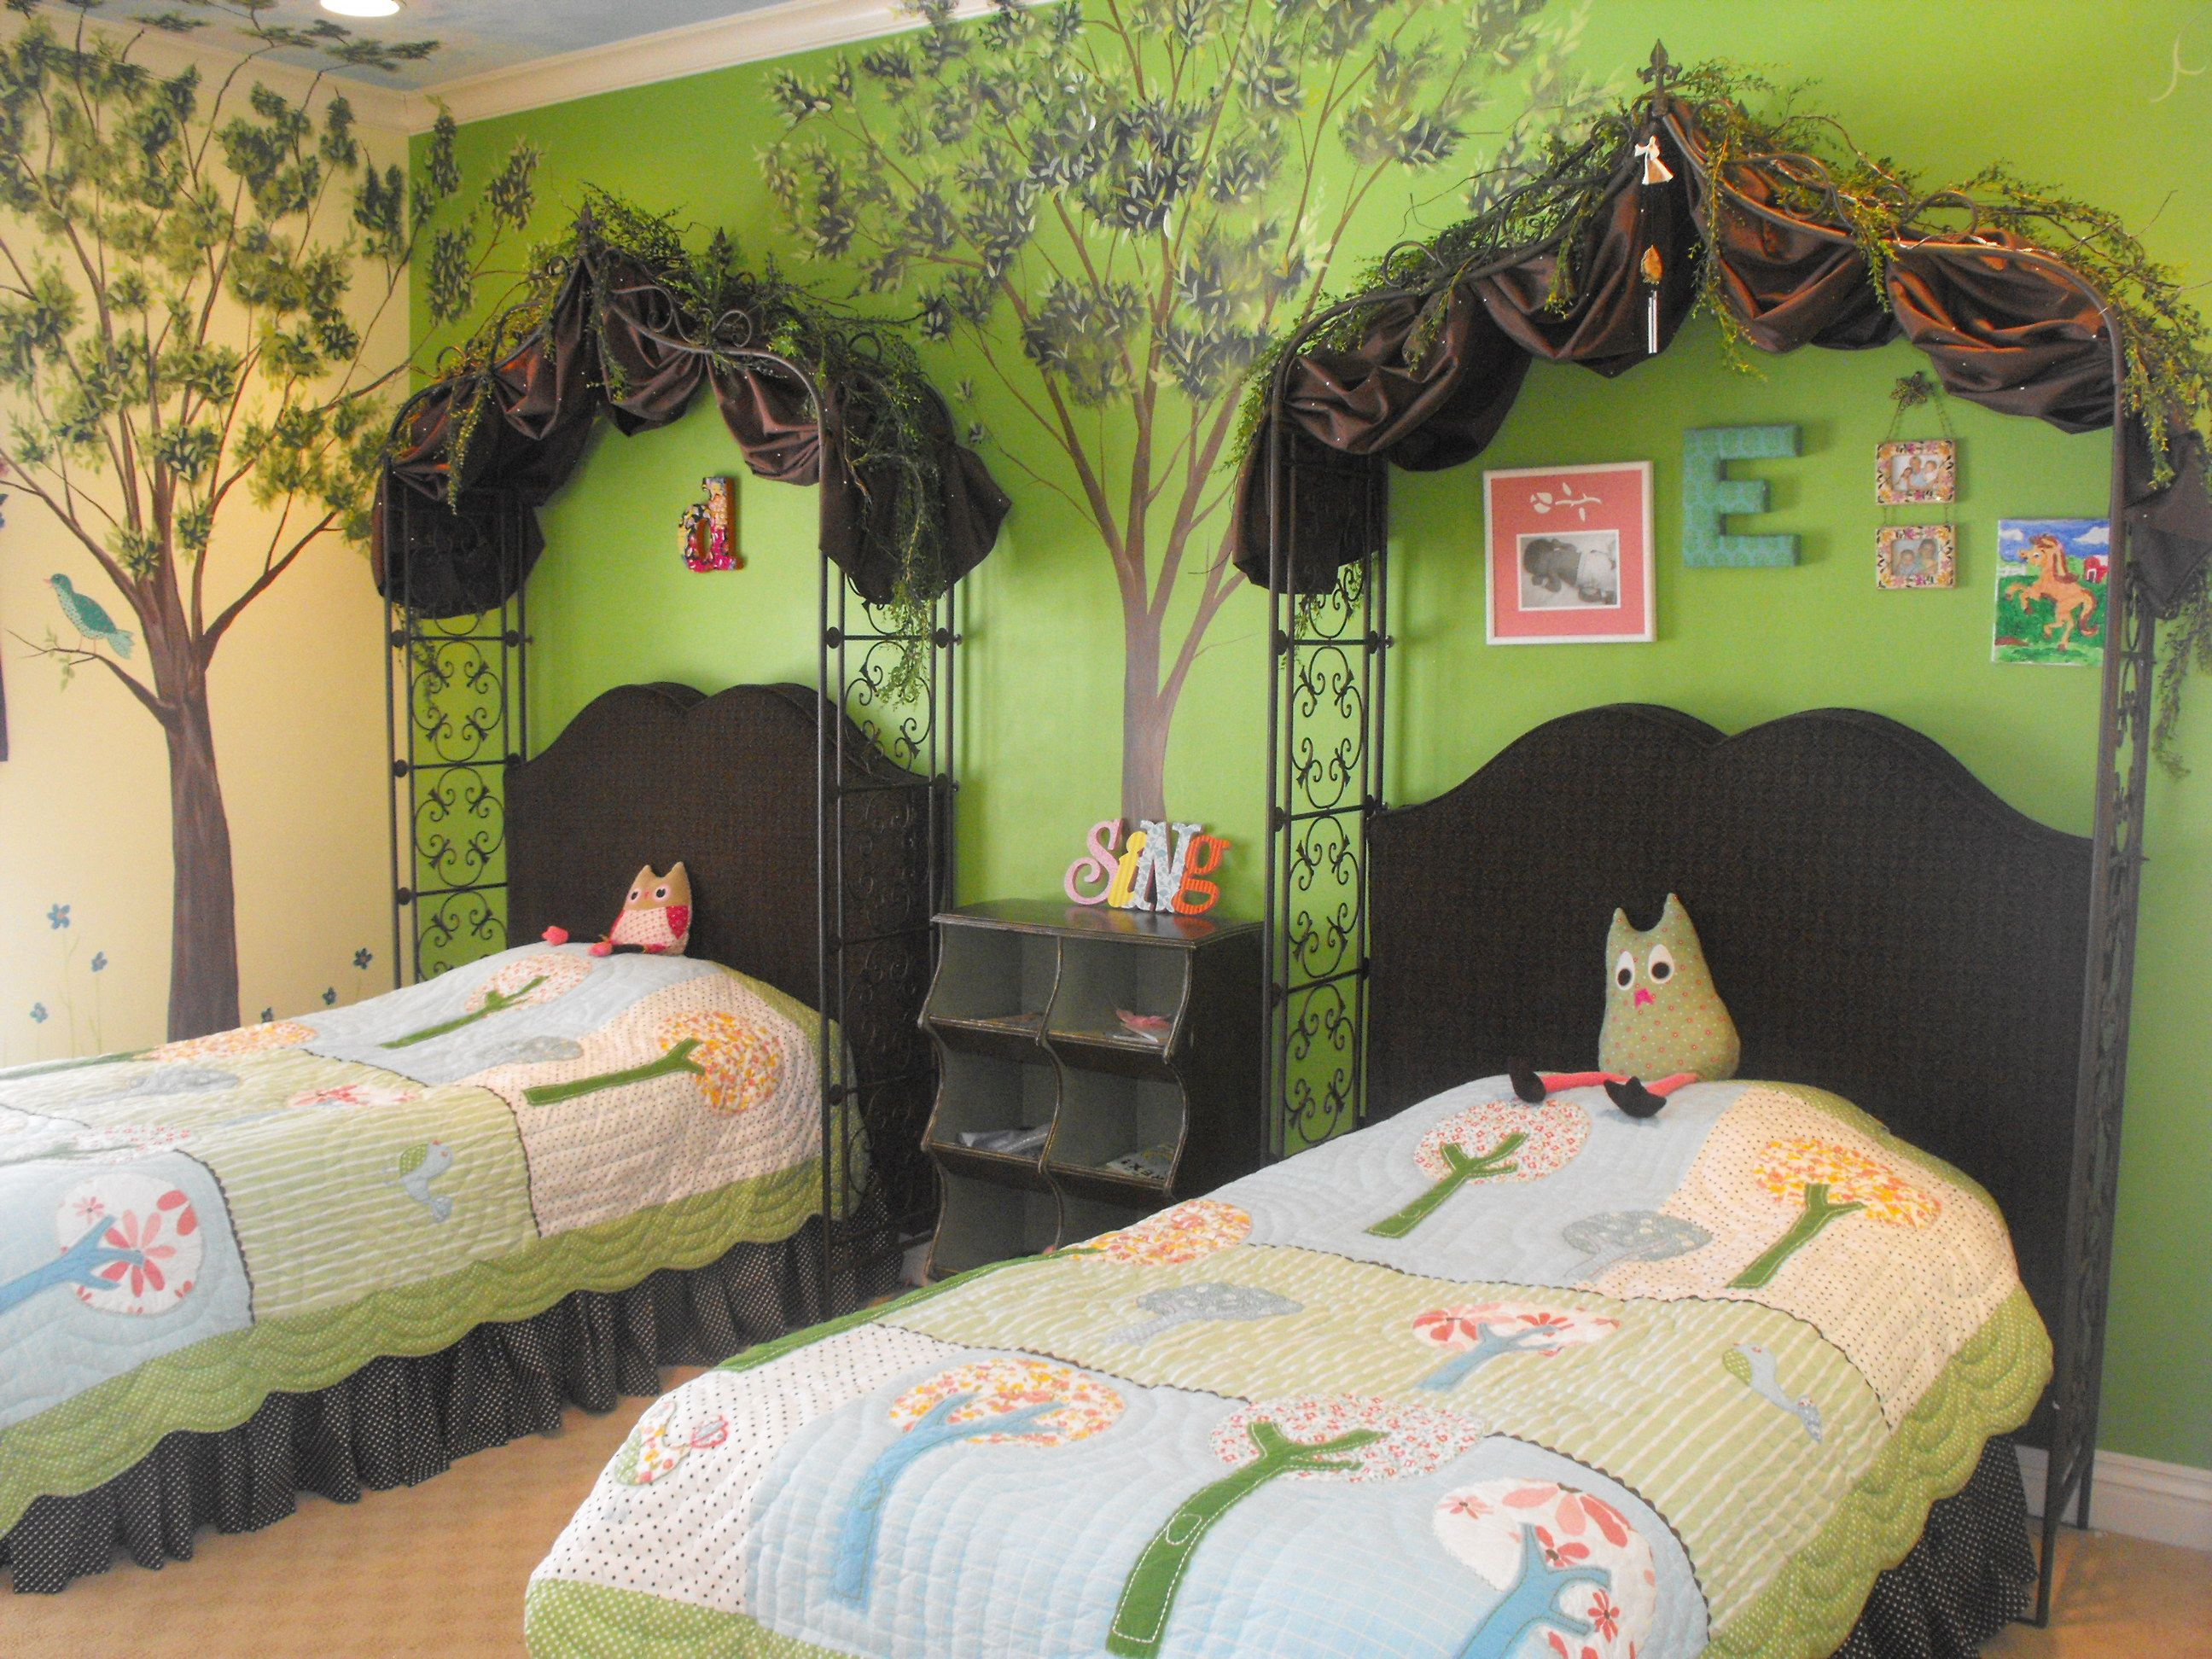 Pin by meghan rudisill on home decor enchanted woodland for Enchanted forest bedroom ideas